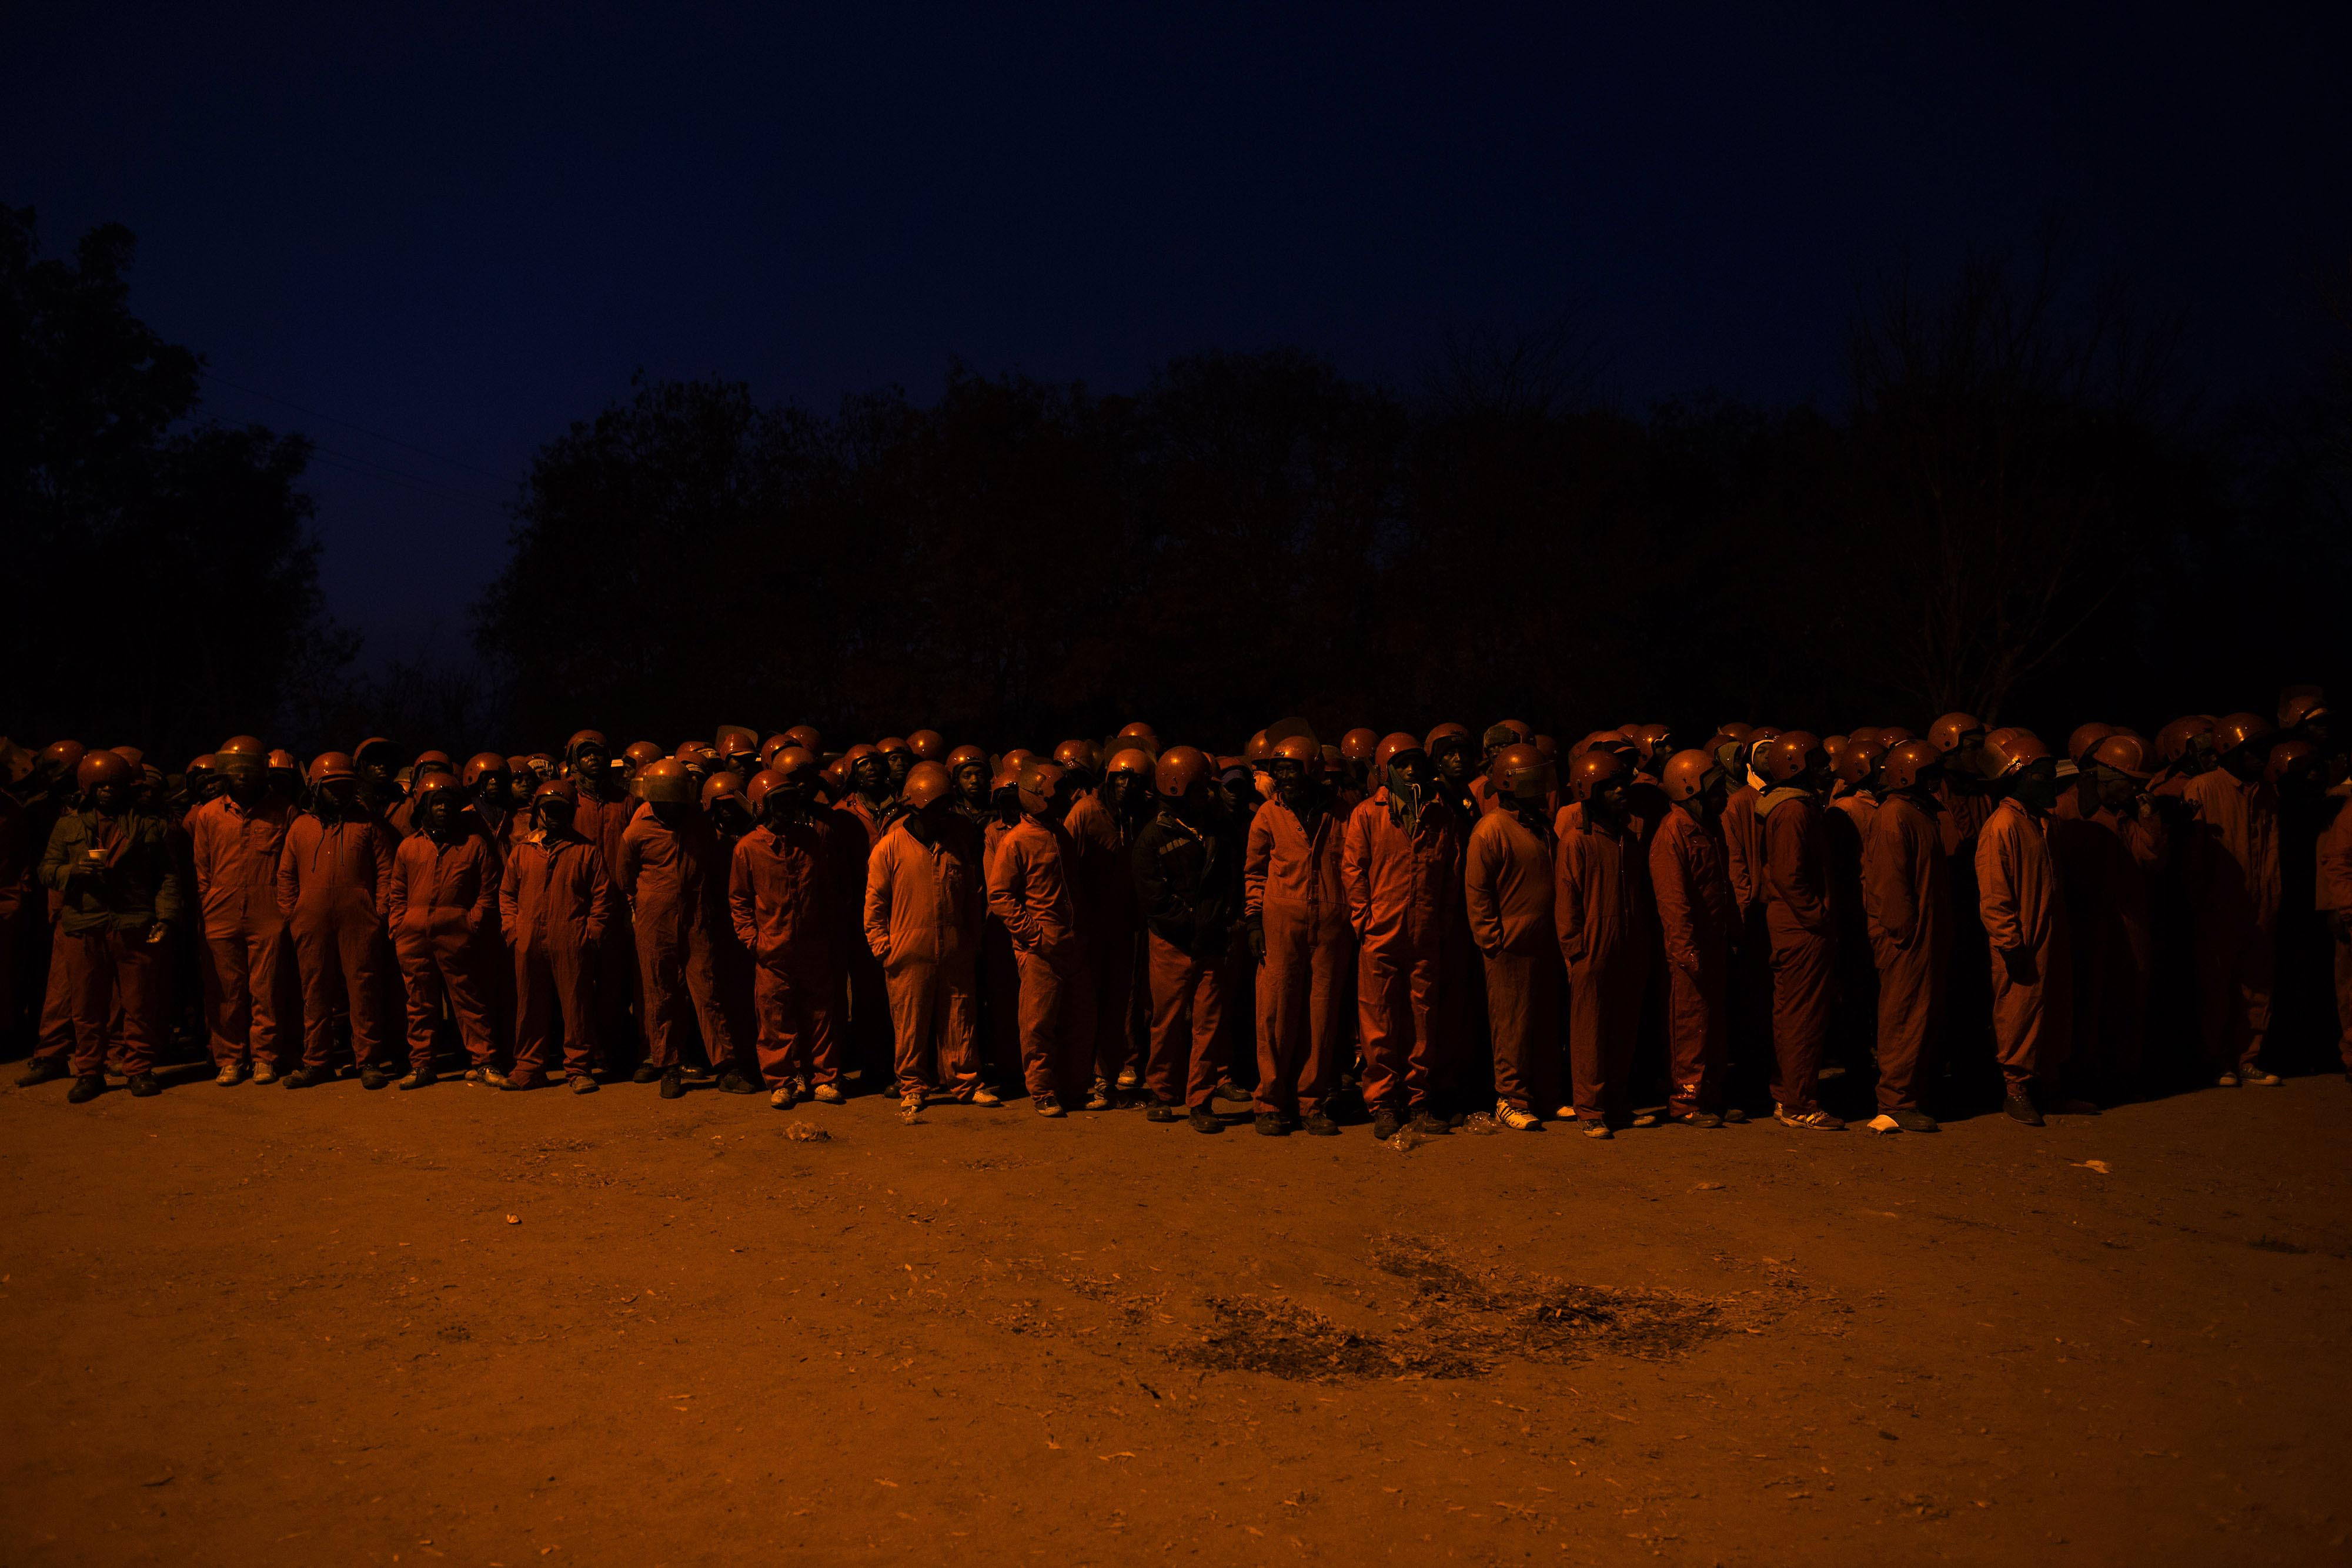 6 June 2017. Before dawn the Red Ants await their orders before departing on an operation in the city centre. Red Ants compound, South of Johannesburg.